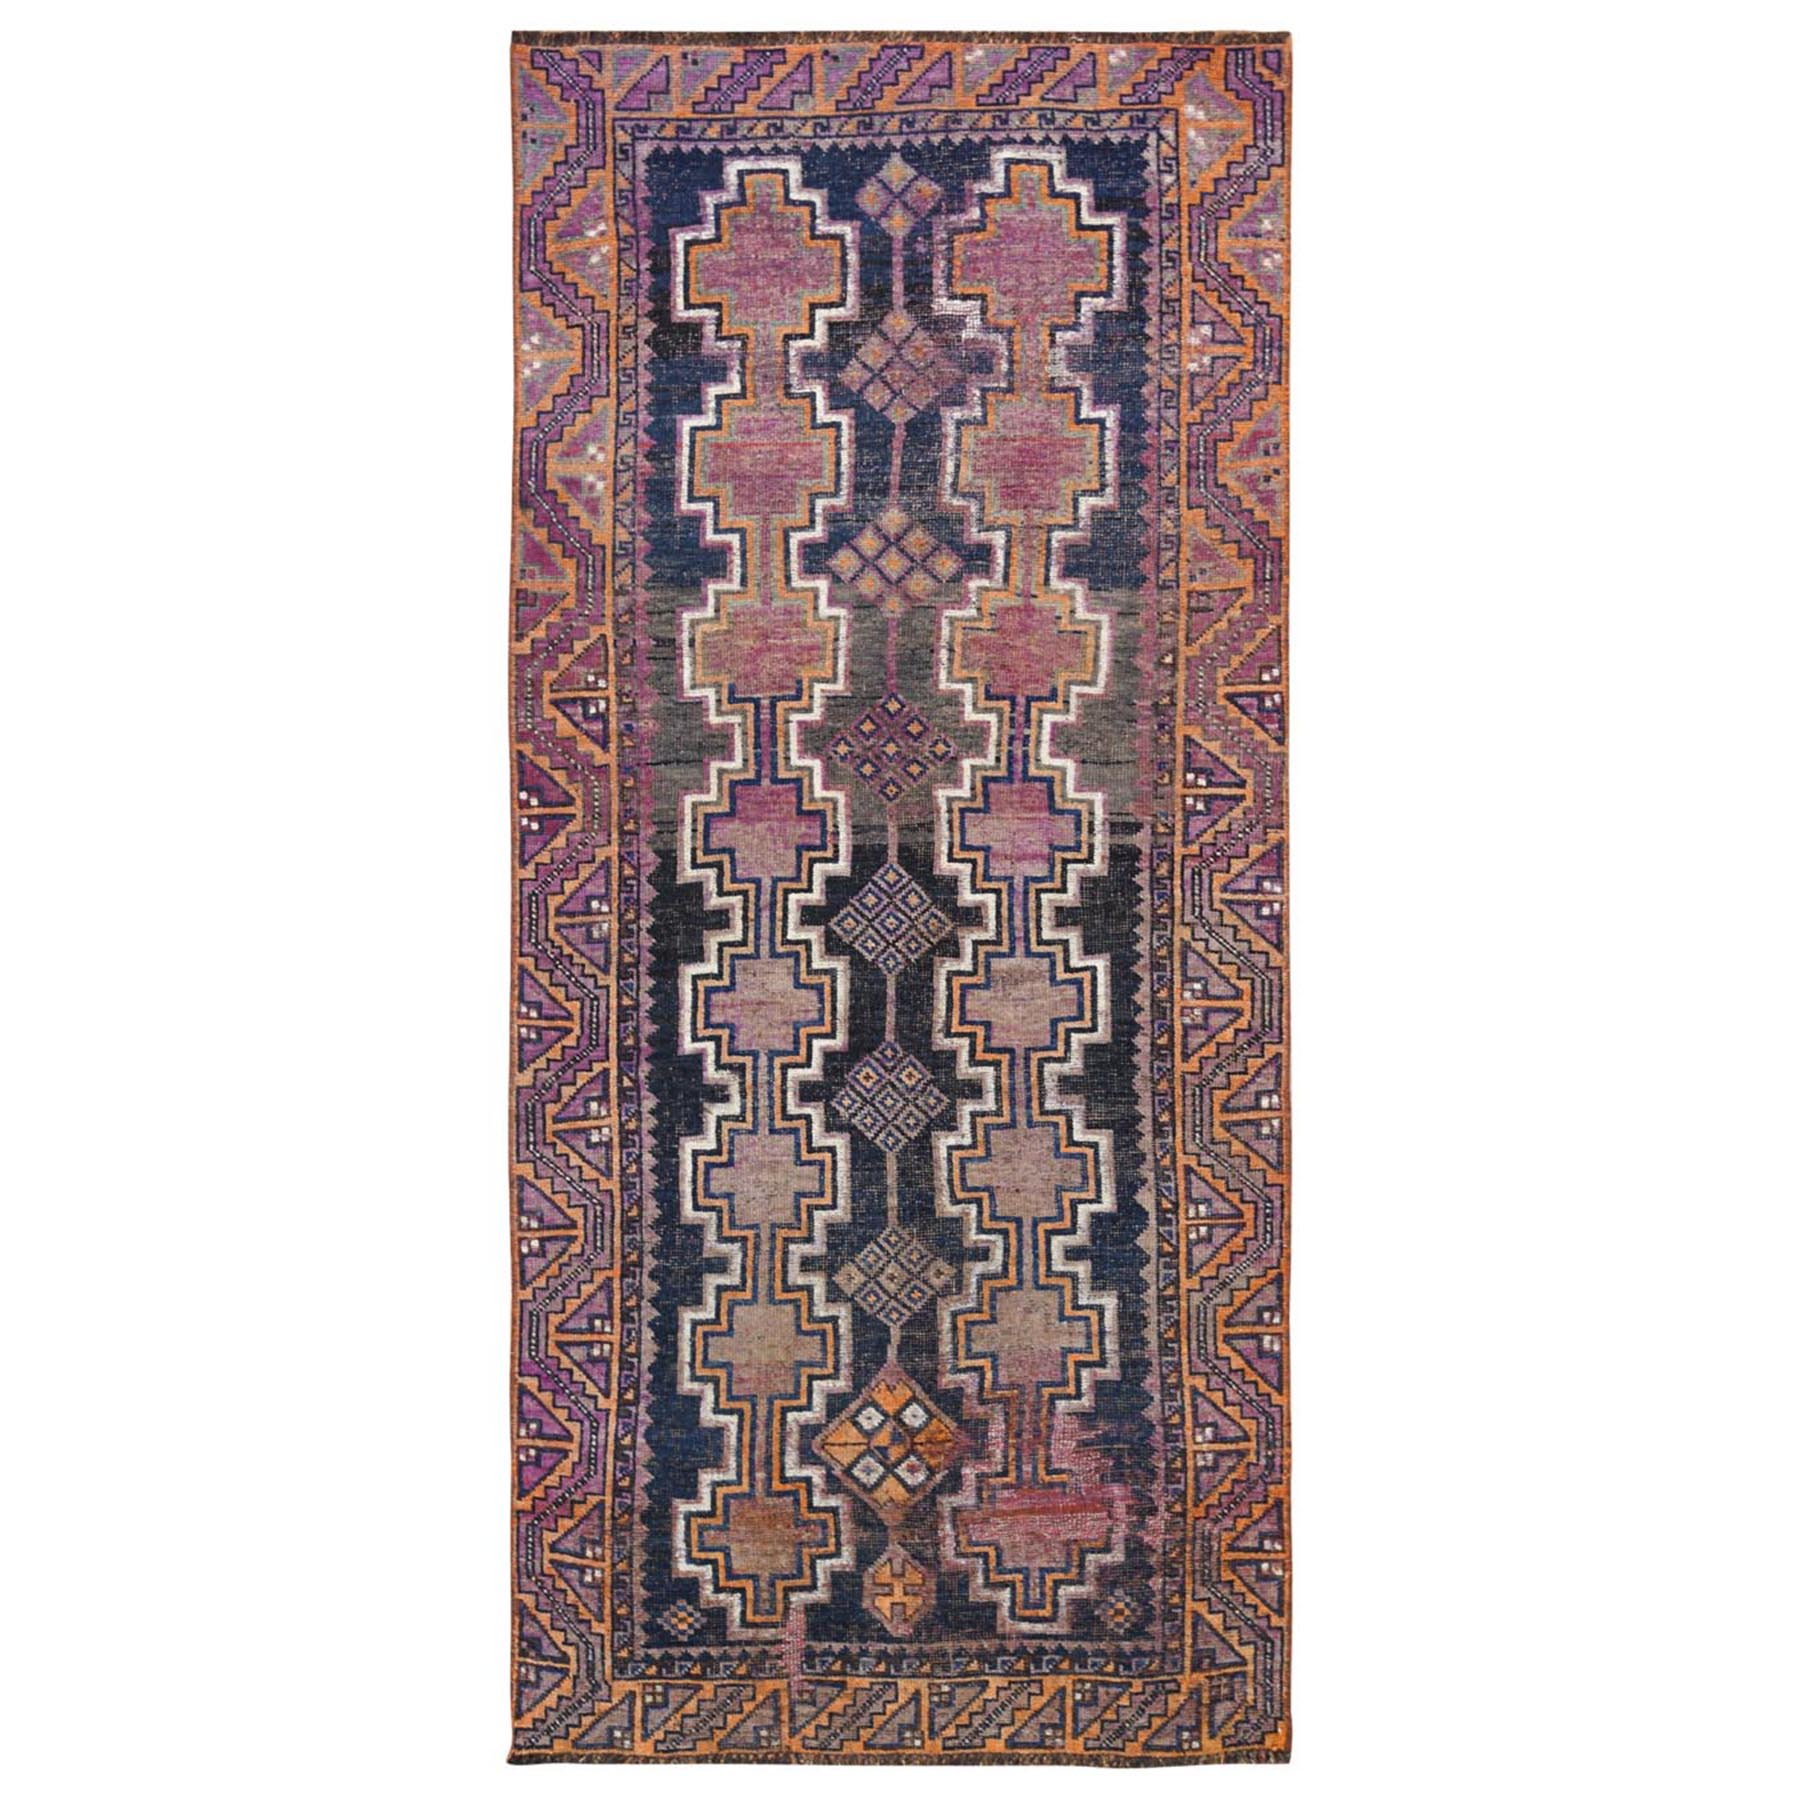 Fetneh Collection And Vintage Overdyed Collection Hand Knotted Blue Rug No: 1115774